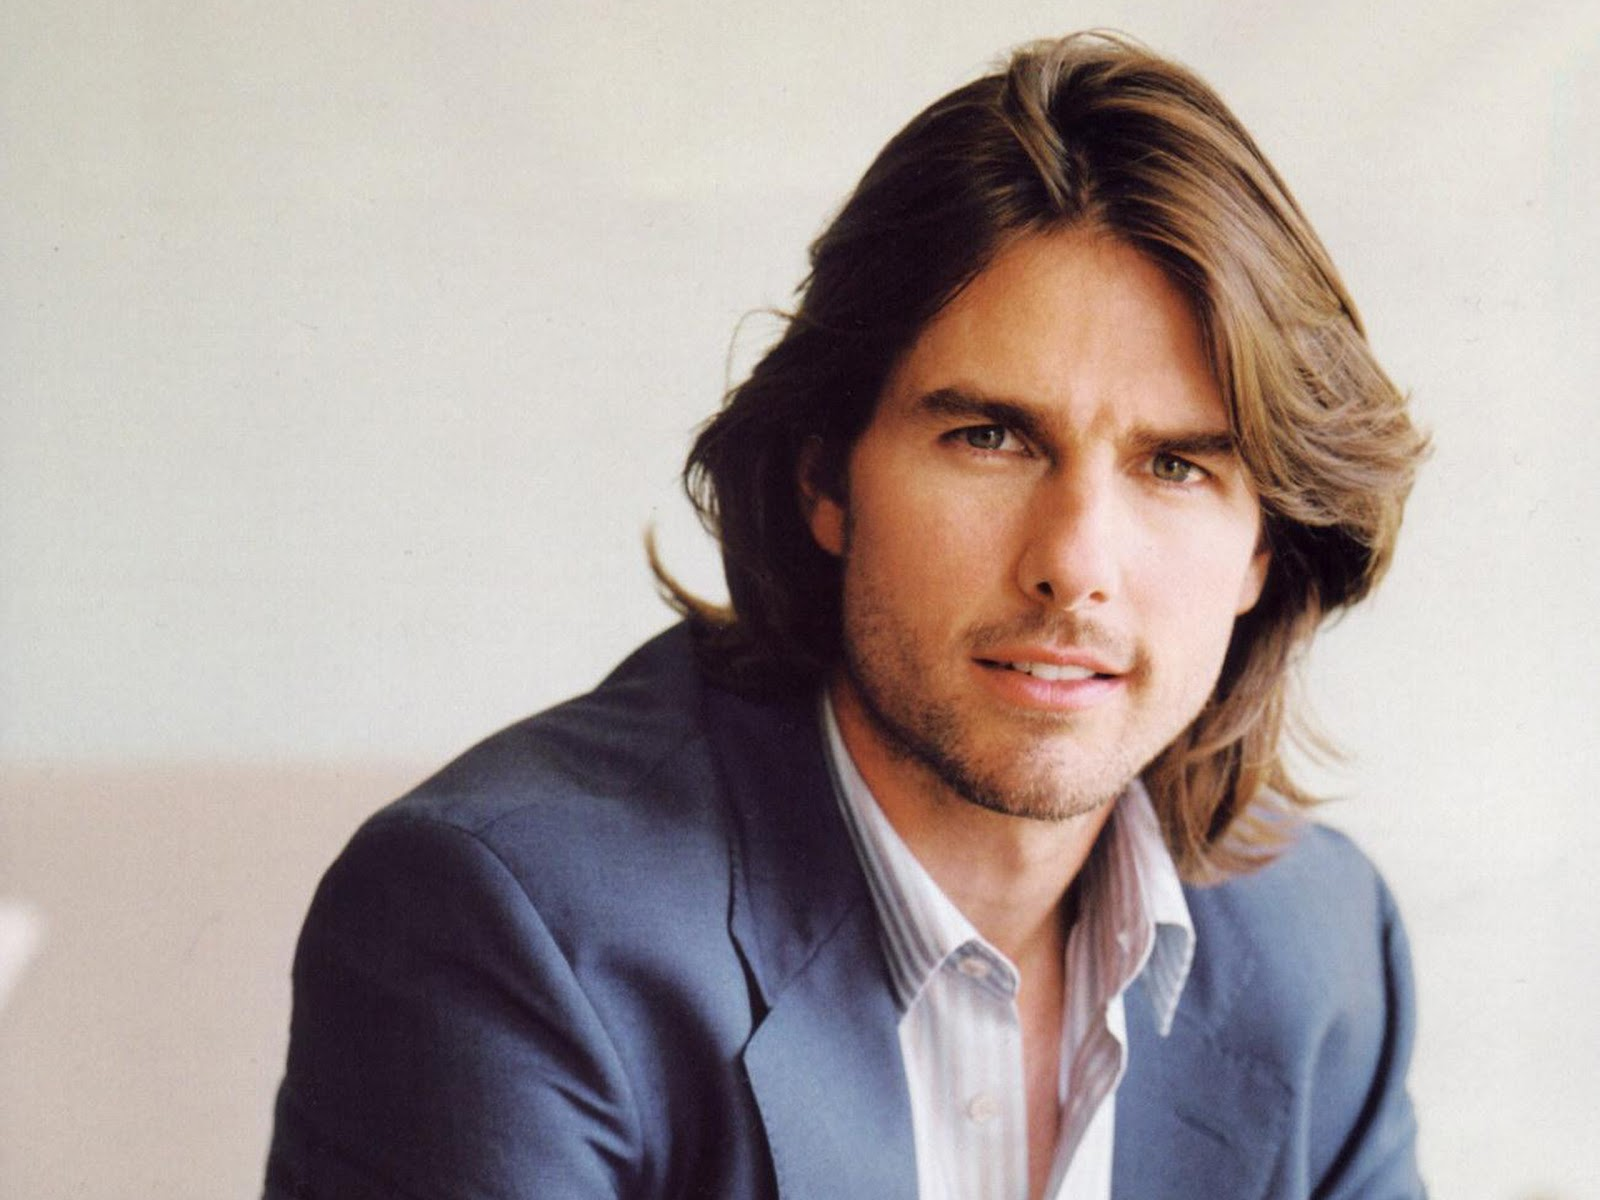 All Wallpapers Tom Cruise hd Wallpapers 2012 1600x1200